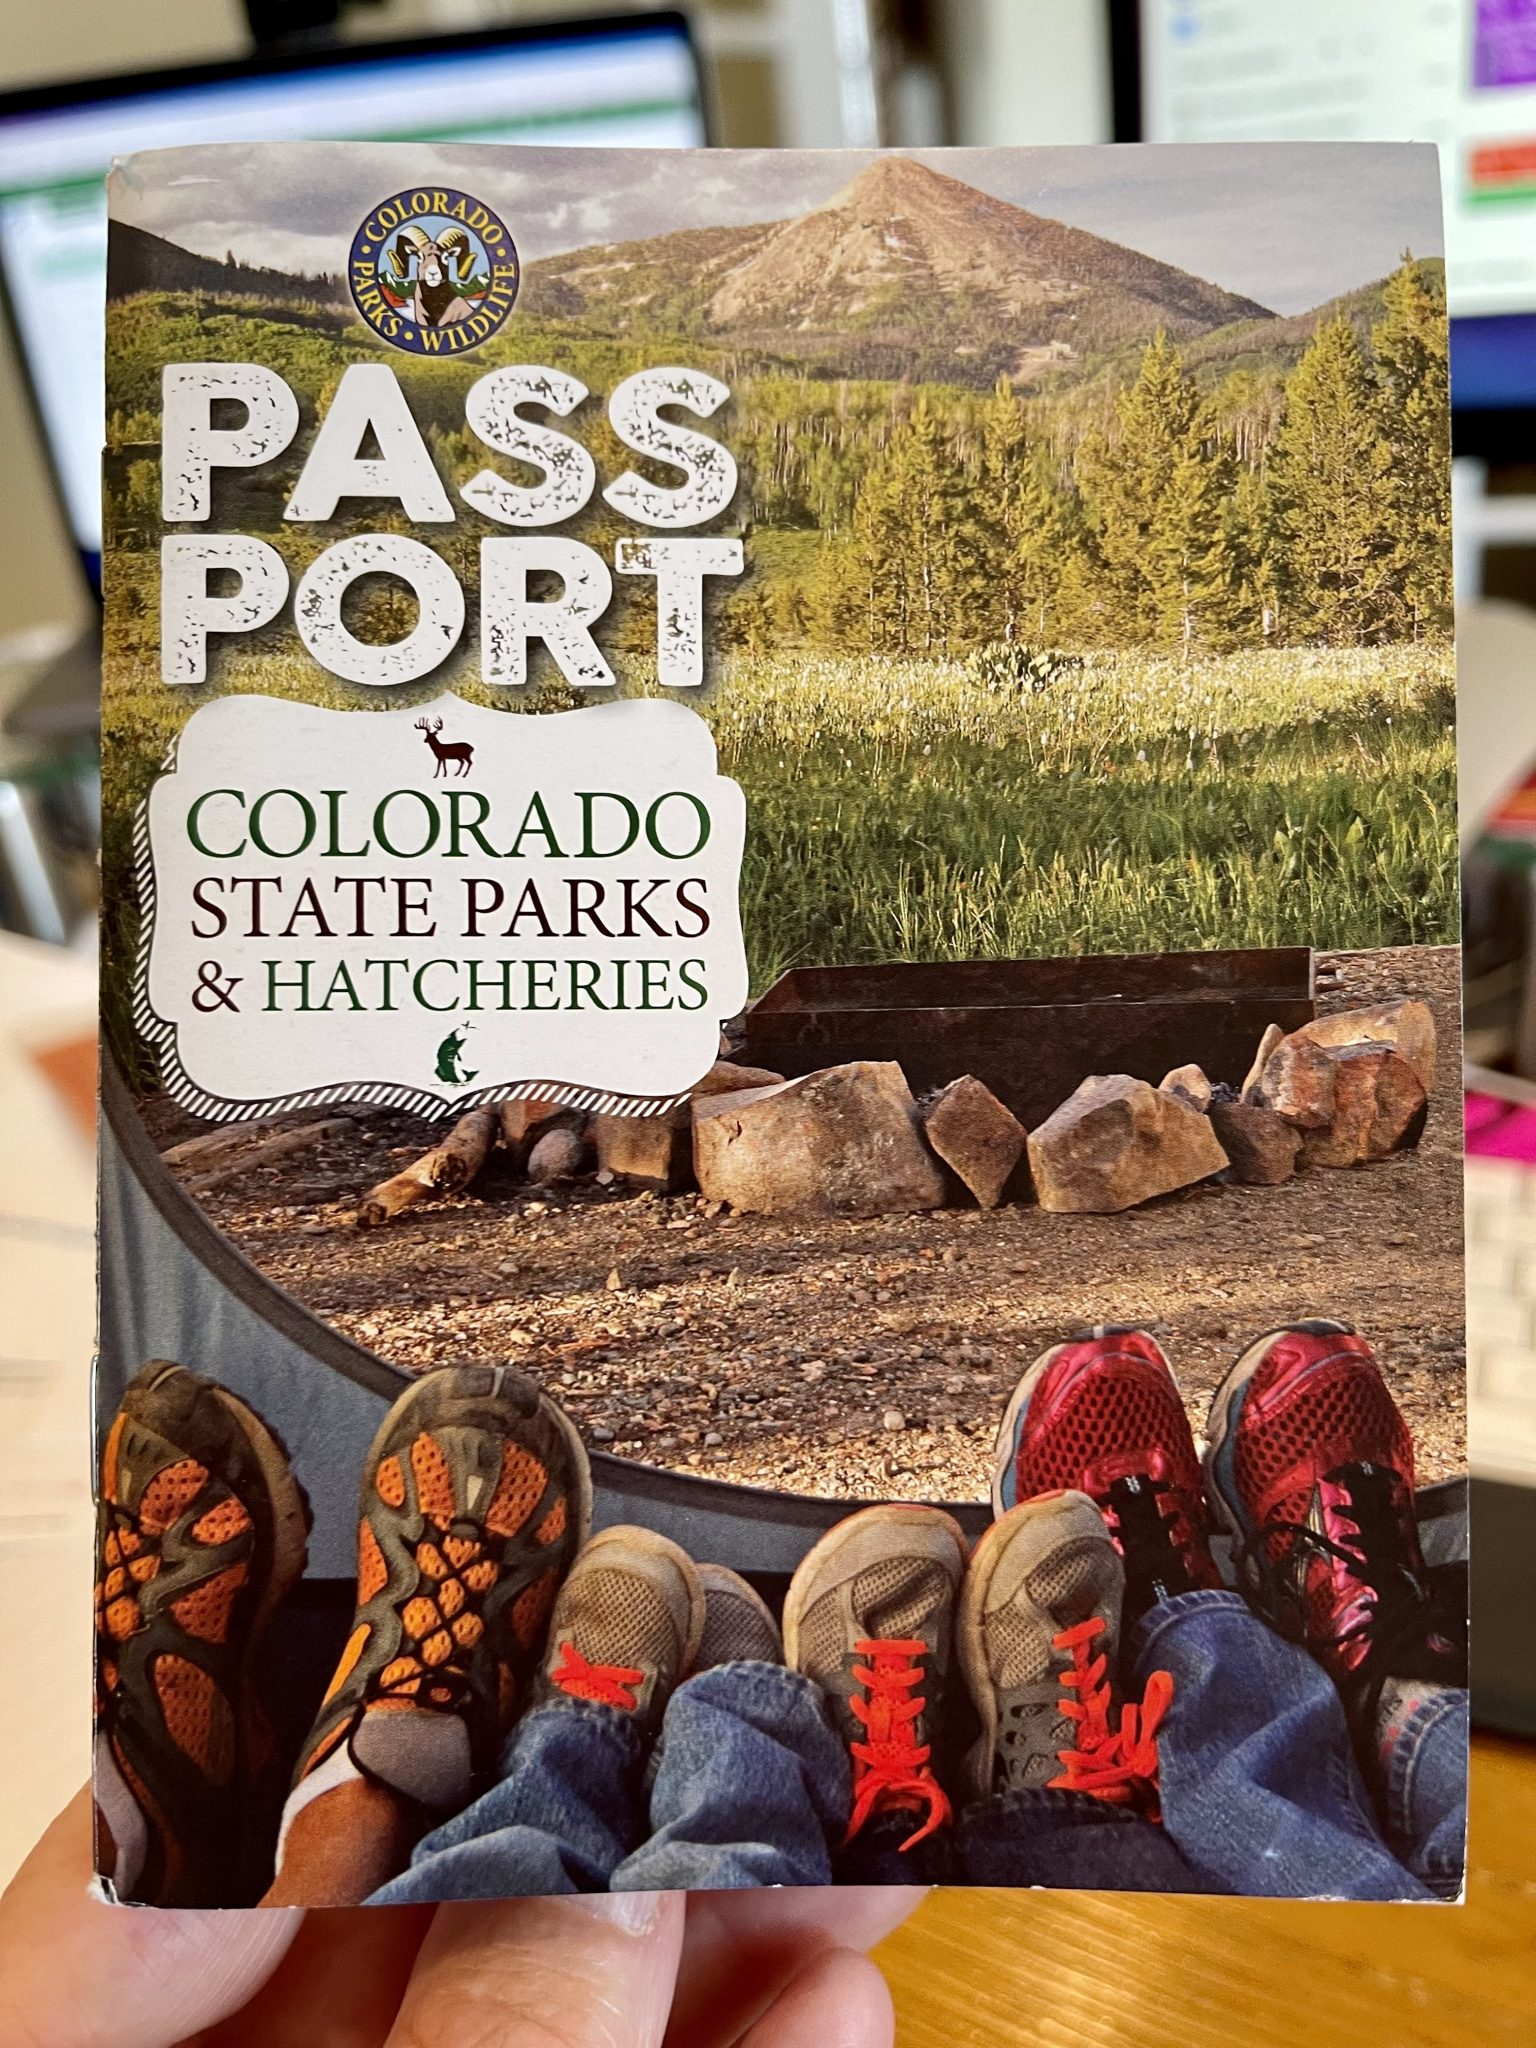 Colorado Parks and Wildlife Passport cover. photo of people's legs at the interior edge of a tent looking out toward a fire ring, a meadow, trees and a mountain in the distance. [Text: Colorado Parks and Wildlife Passport. Colorado state parks & hatcheries